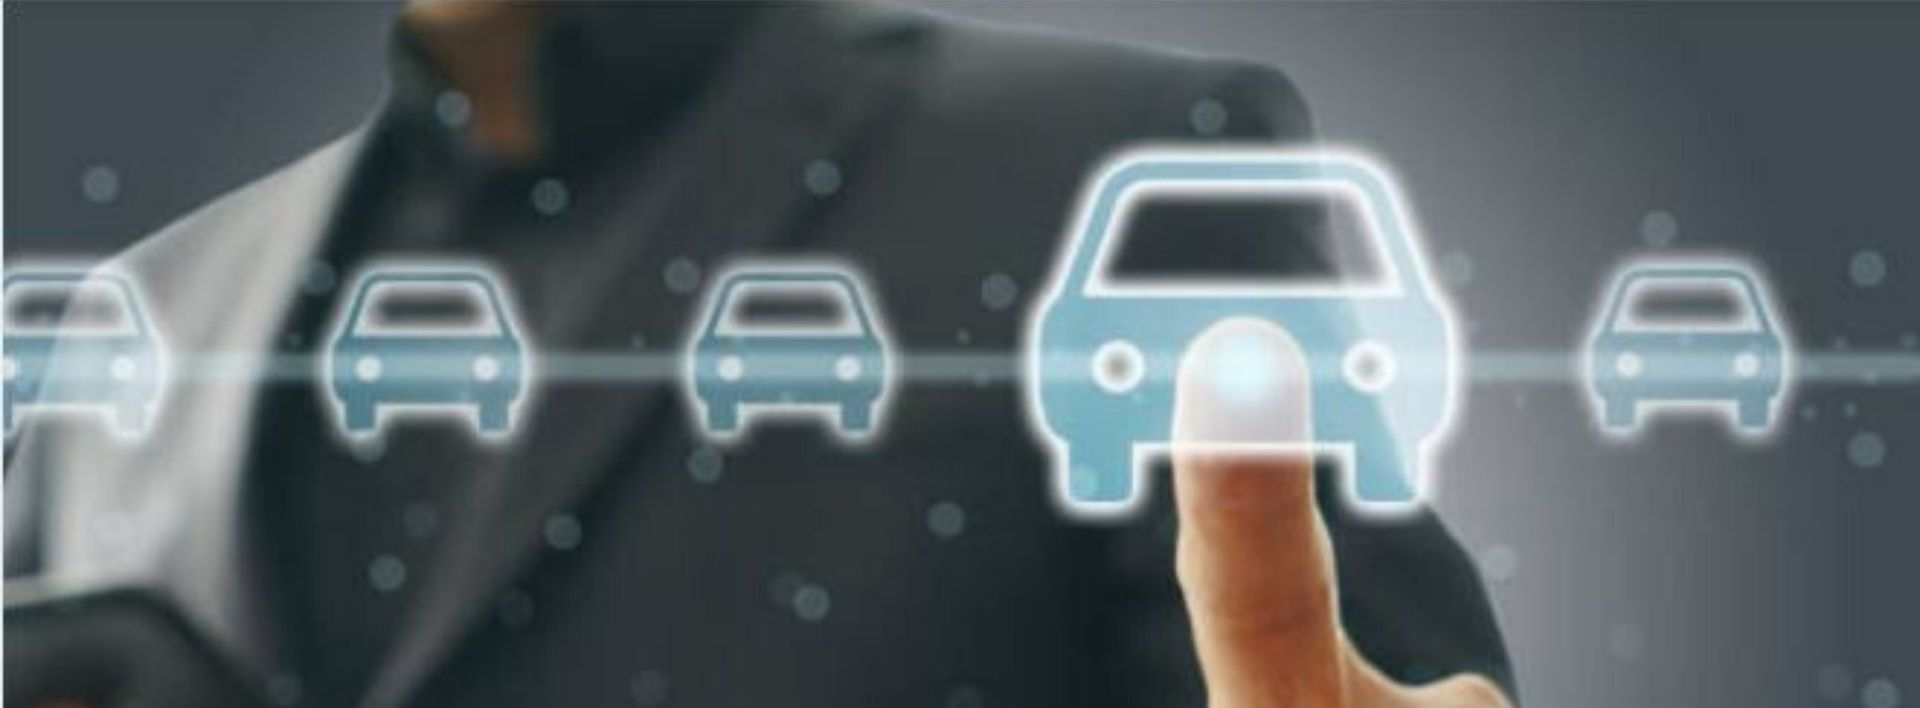 Reef City Motors has touchless vehicle delivery and pick up